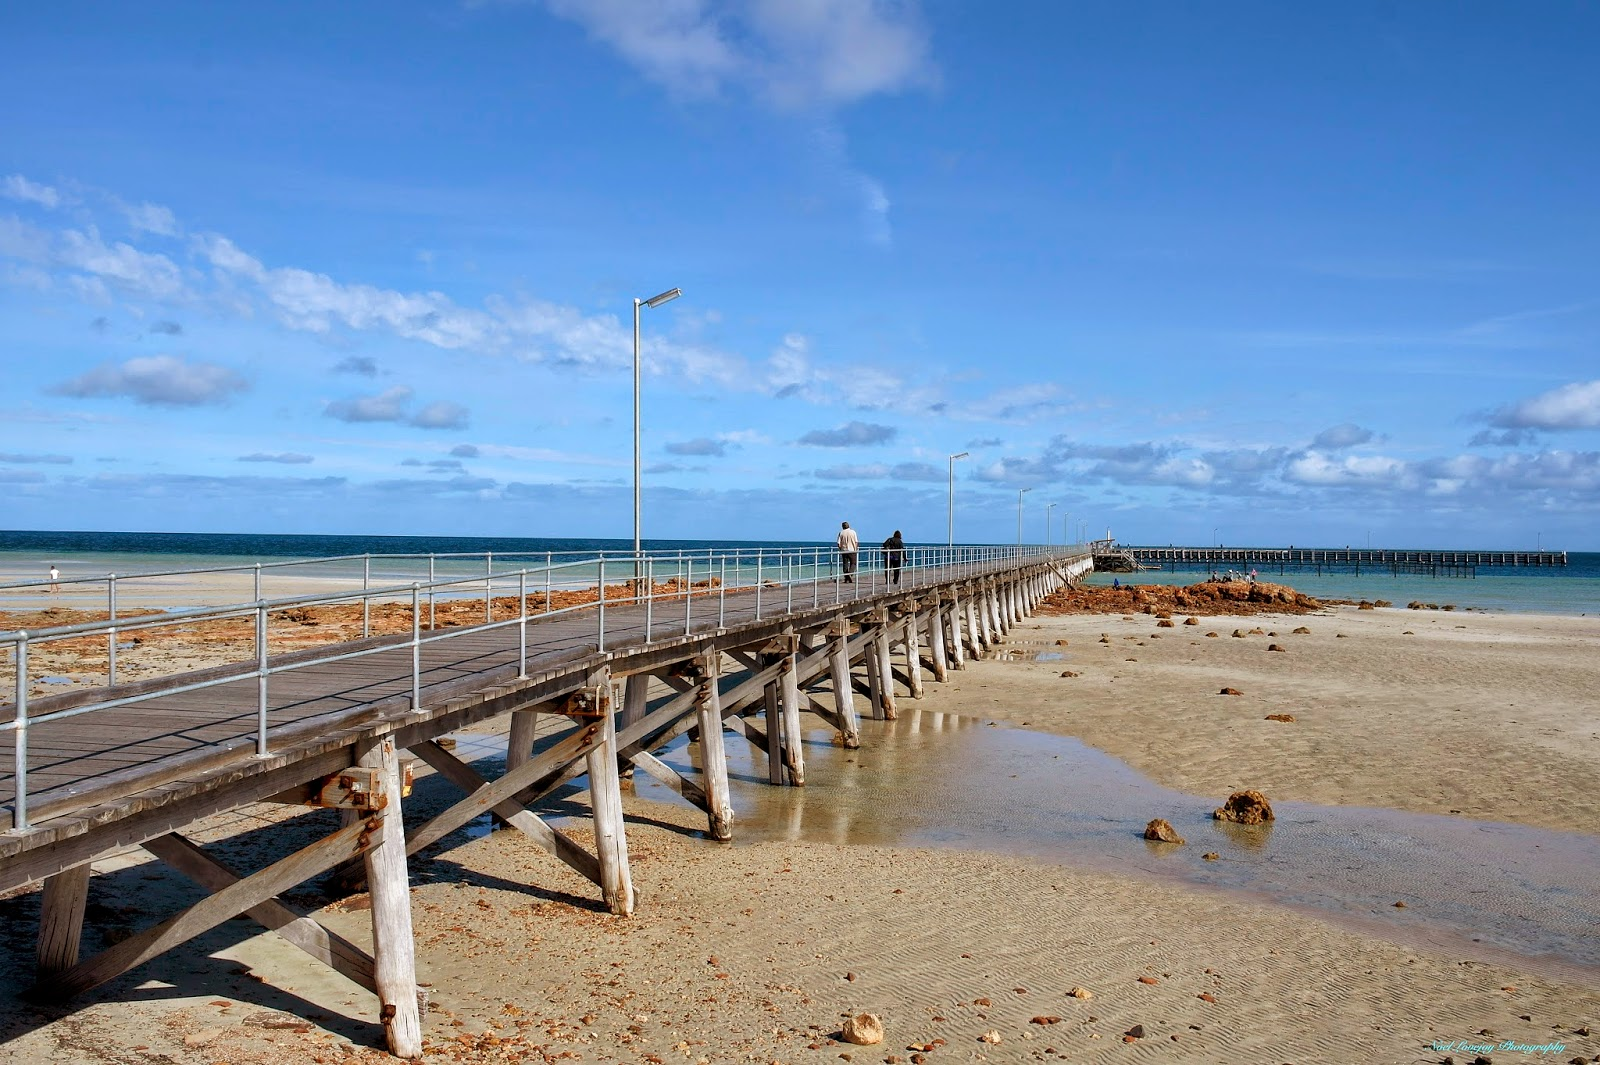 Port Moonta Australia  city photos gallery : The same jetty looking over the sand flats at low tide.